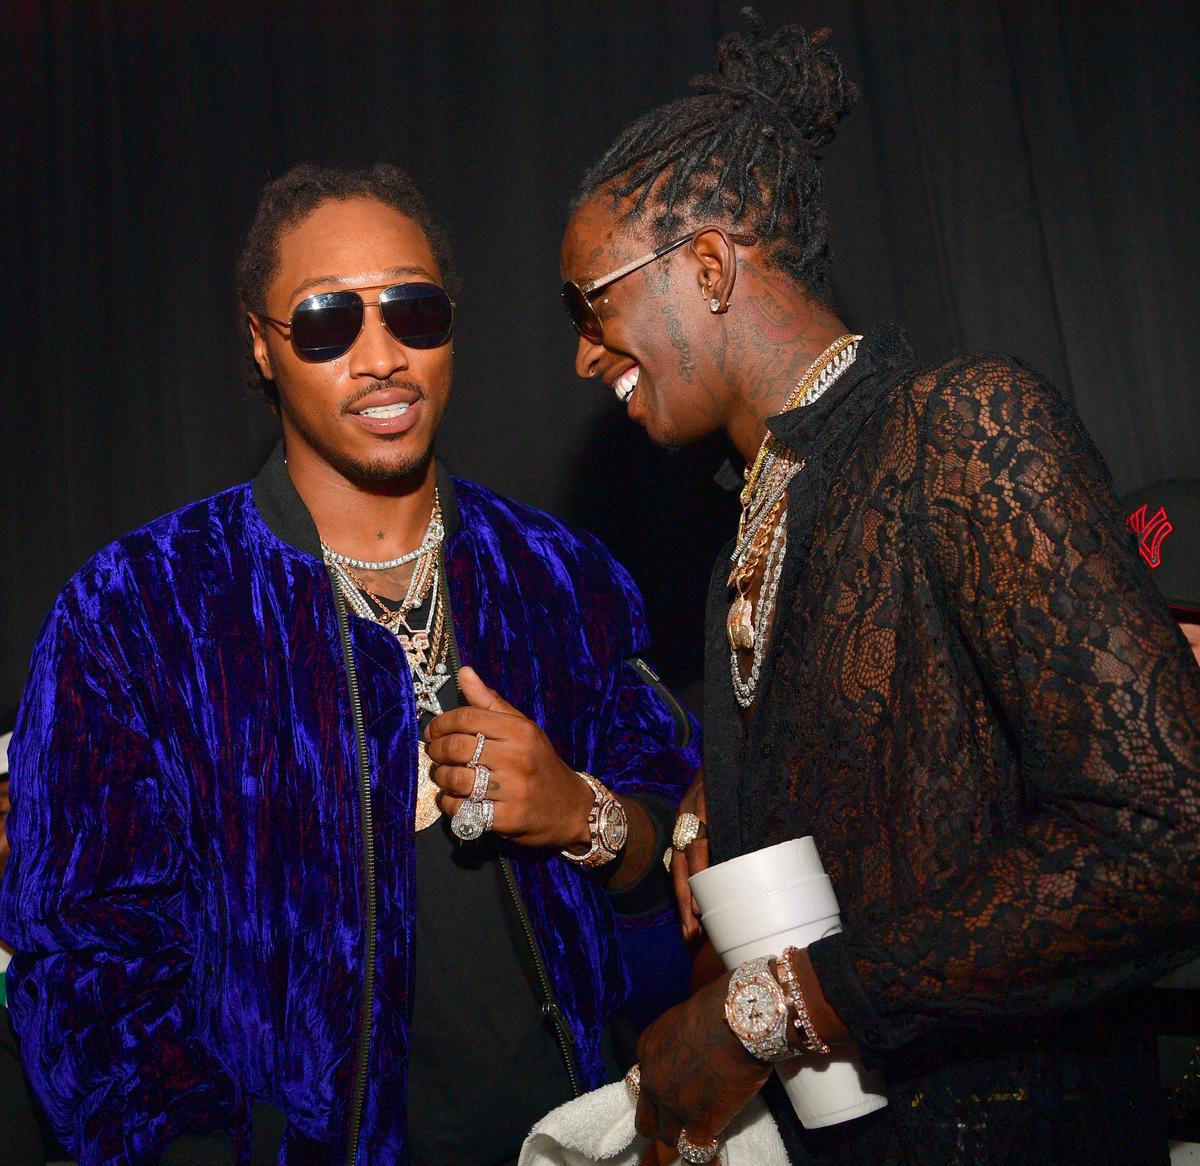 Future & Young Thug - Super Slimey Album Download